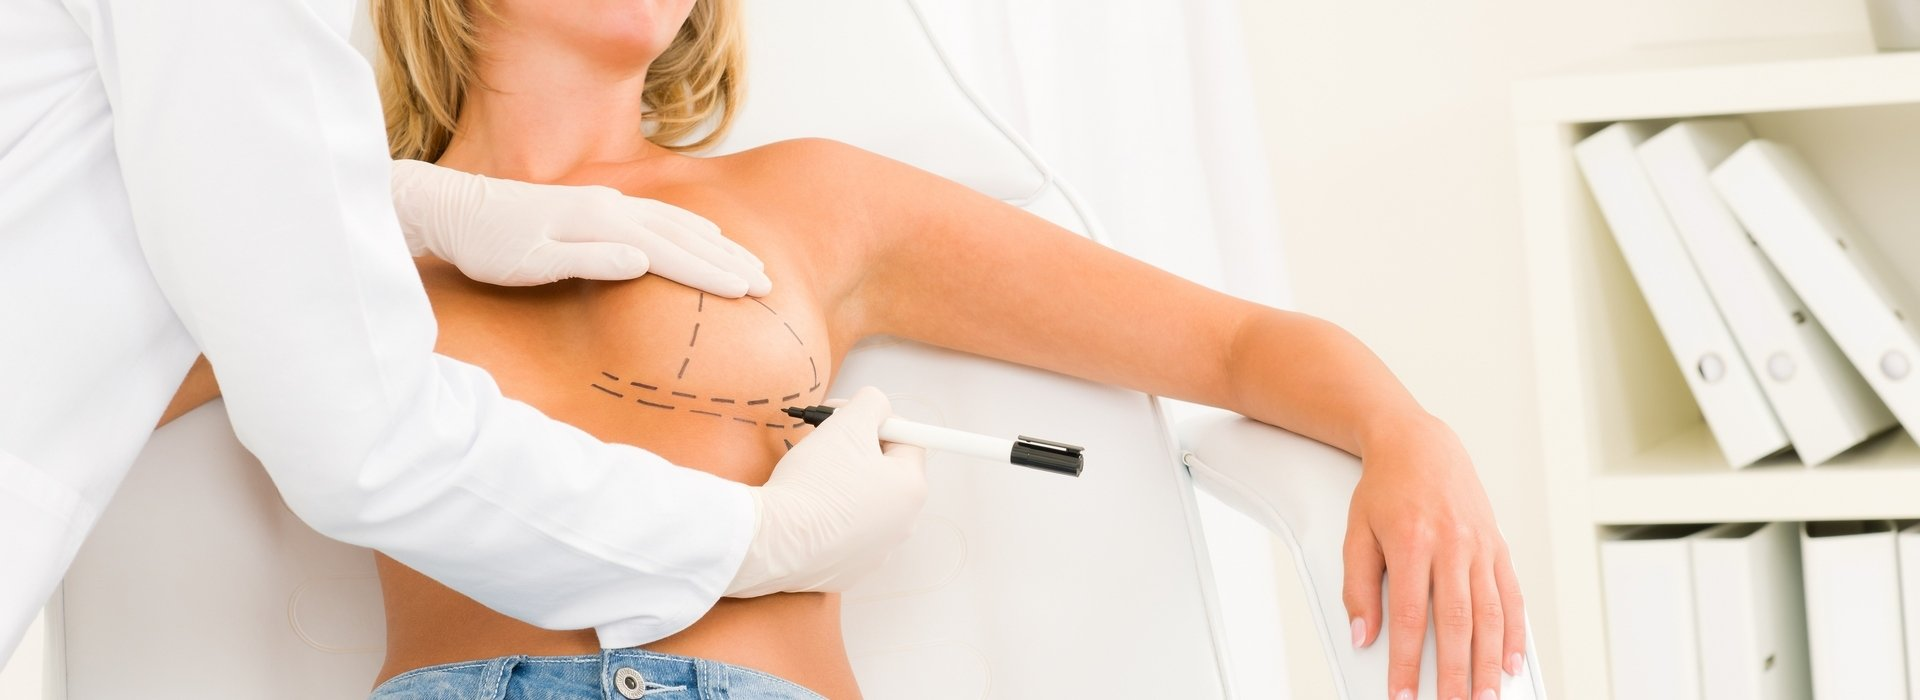 Breast surgery in Budapest – Budapest breast plastic surgery